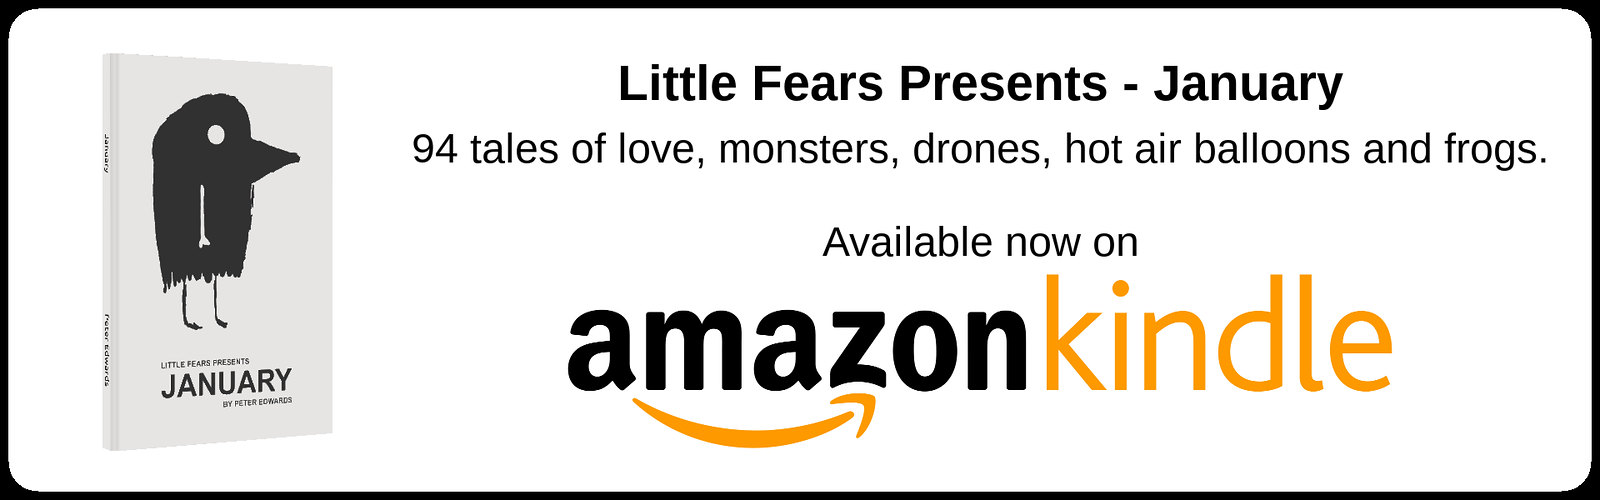 amazon kindle kdp self publish little fears january